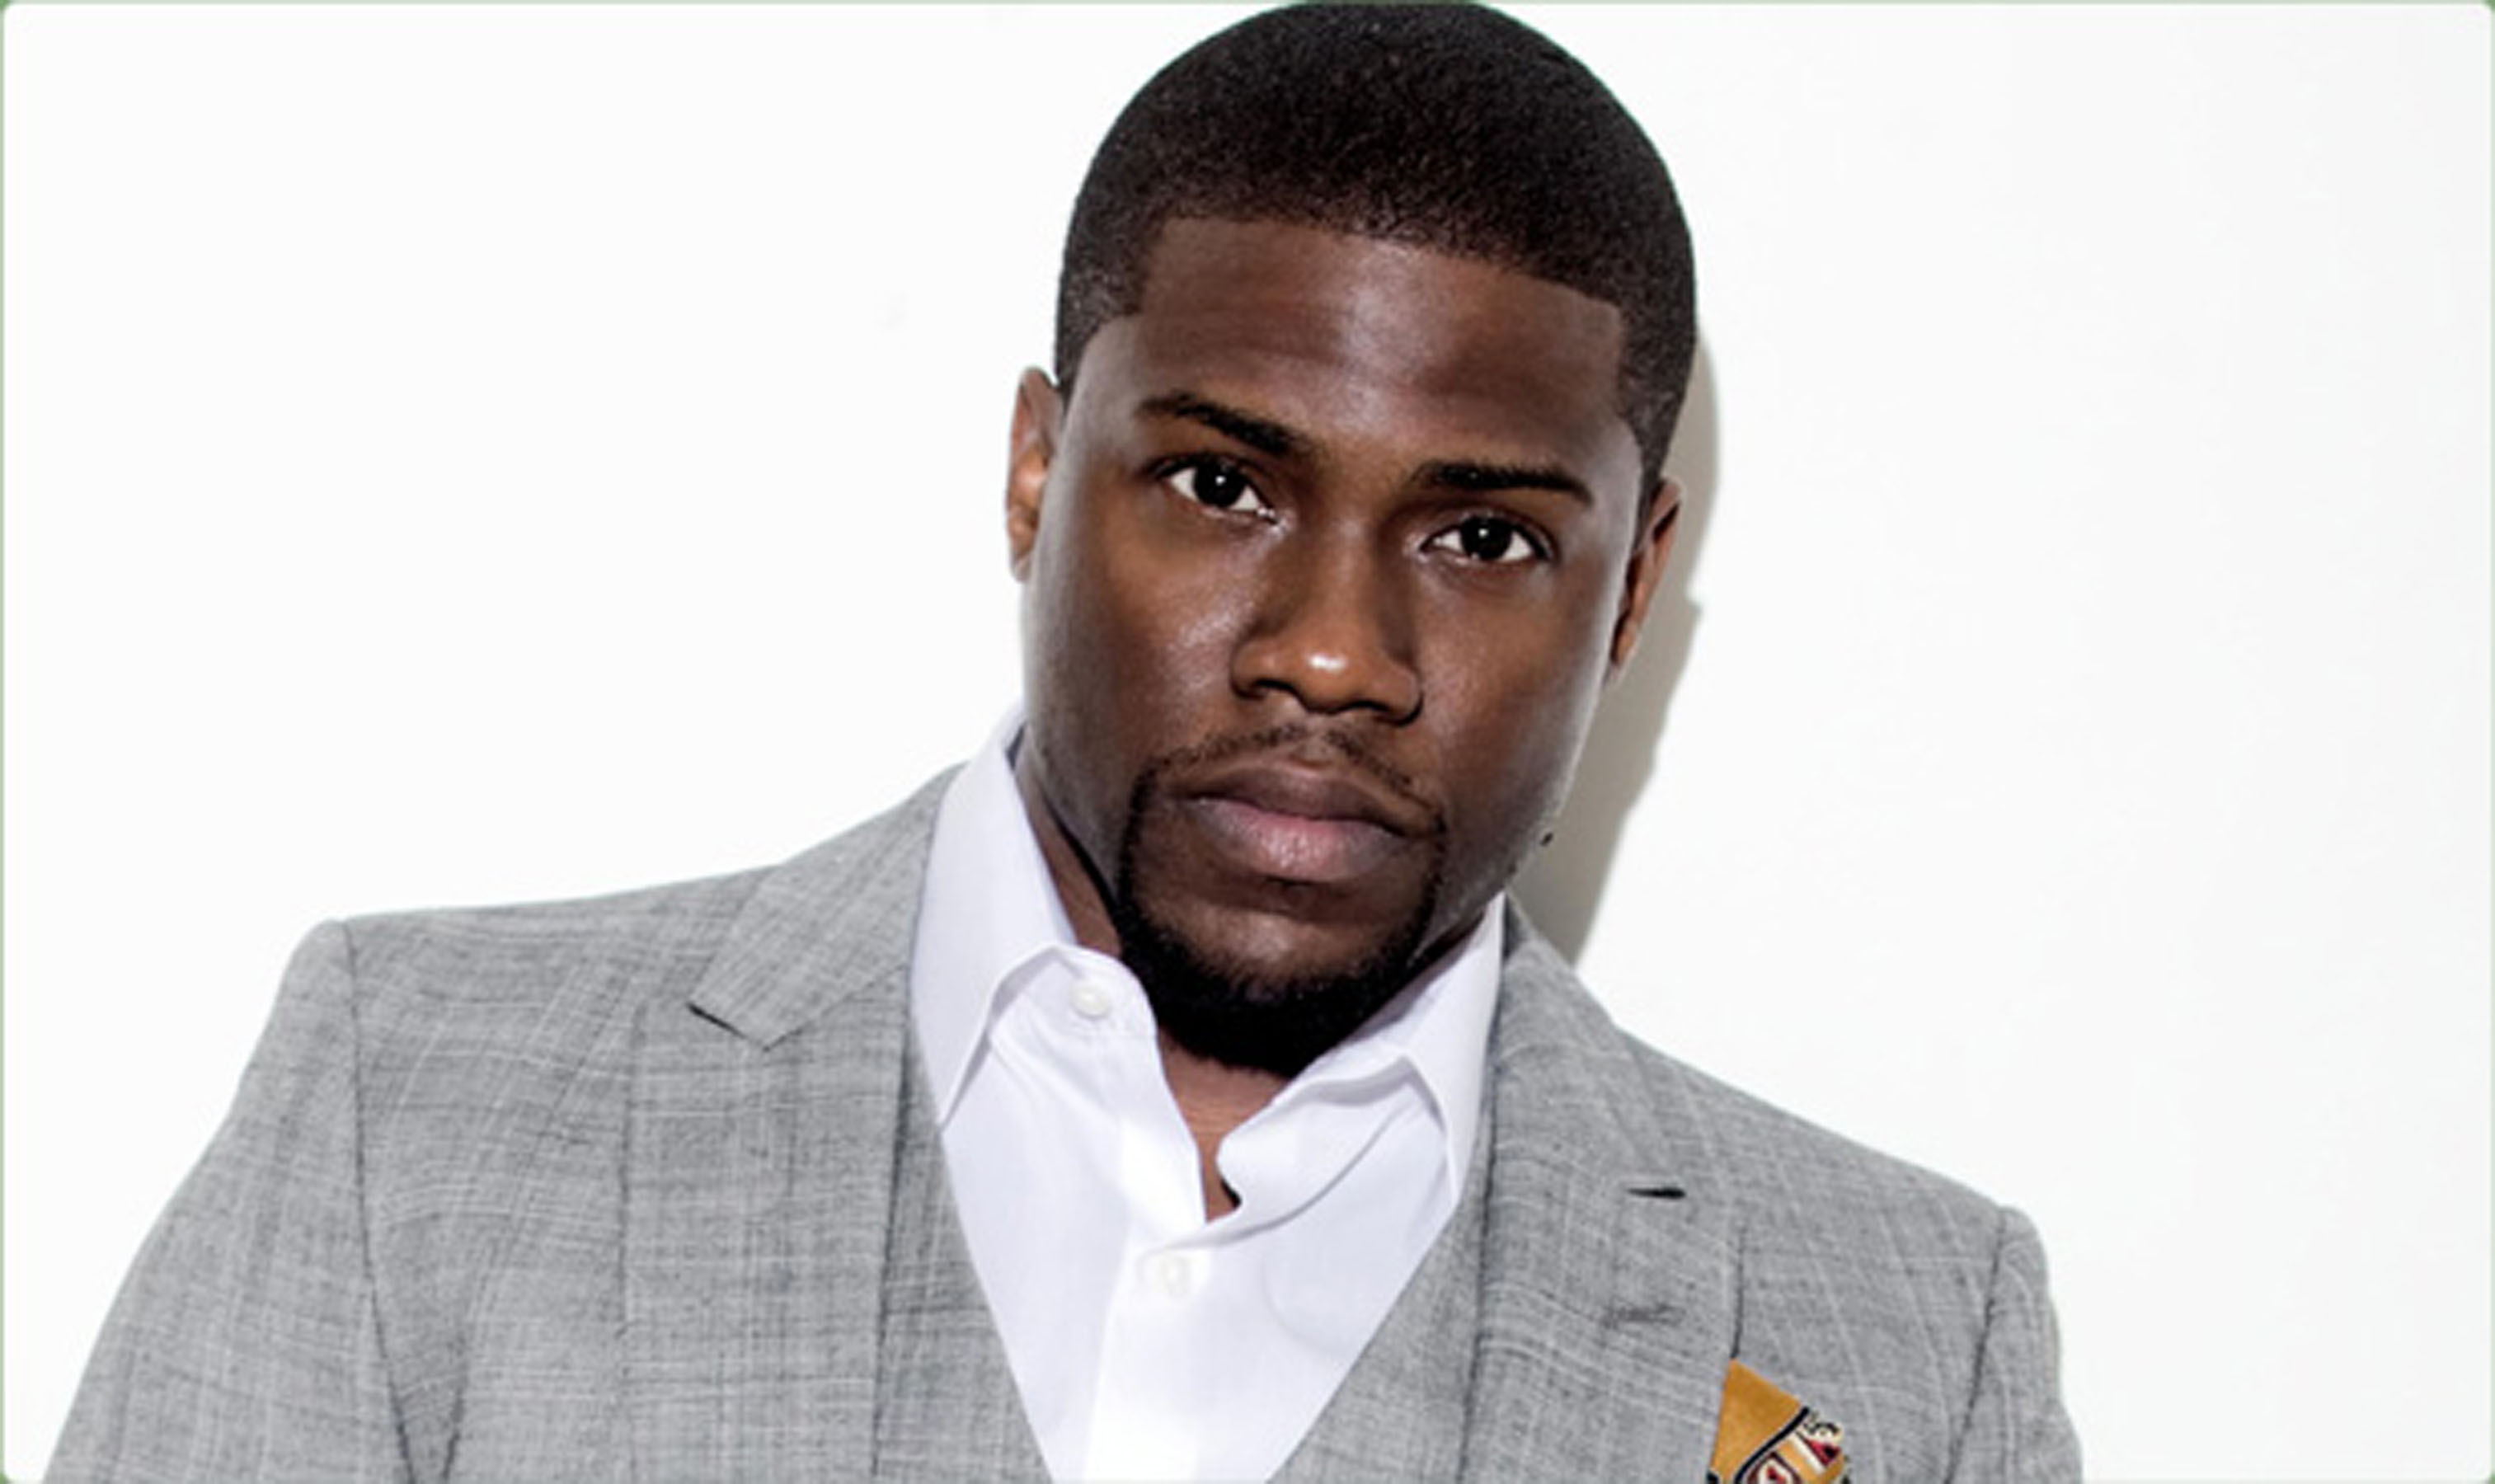 Kevin Hart Is the Highest-Paid Comedian, Earning $87.5 Million